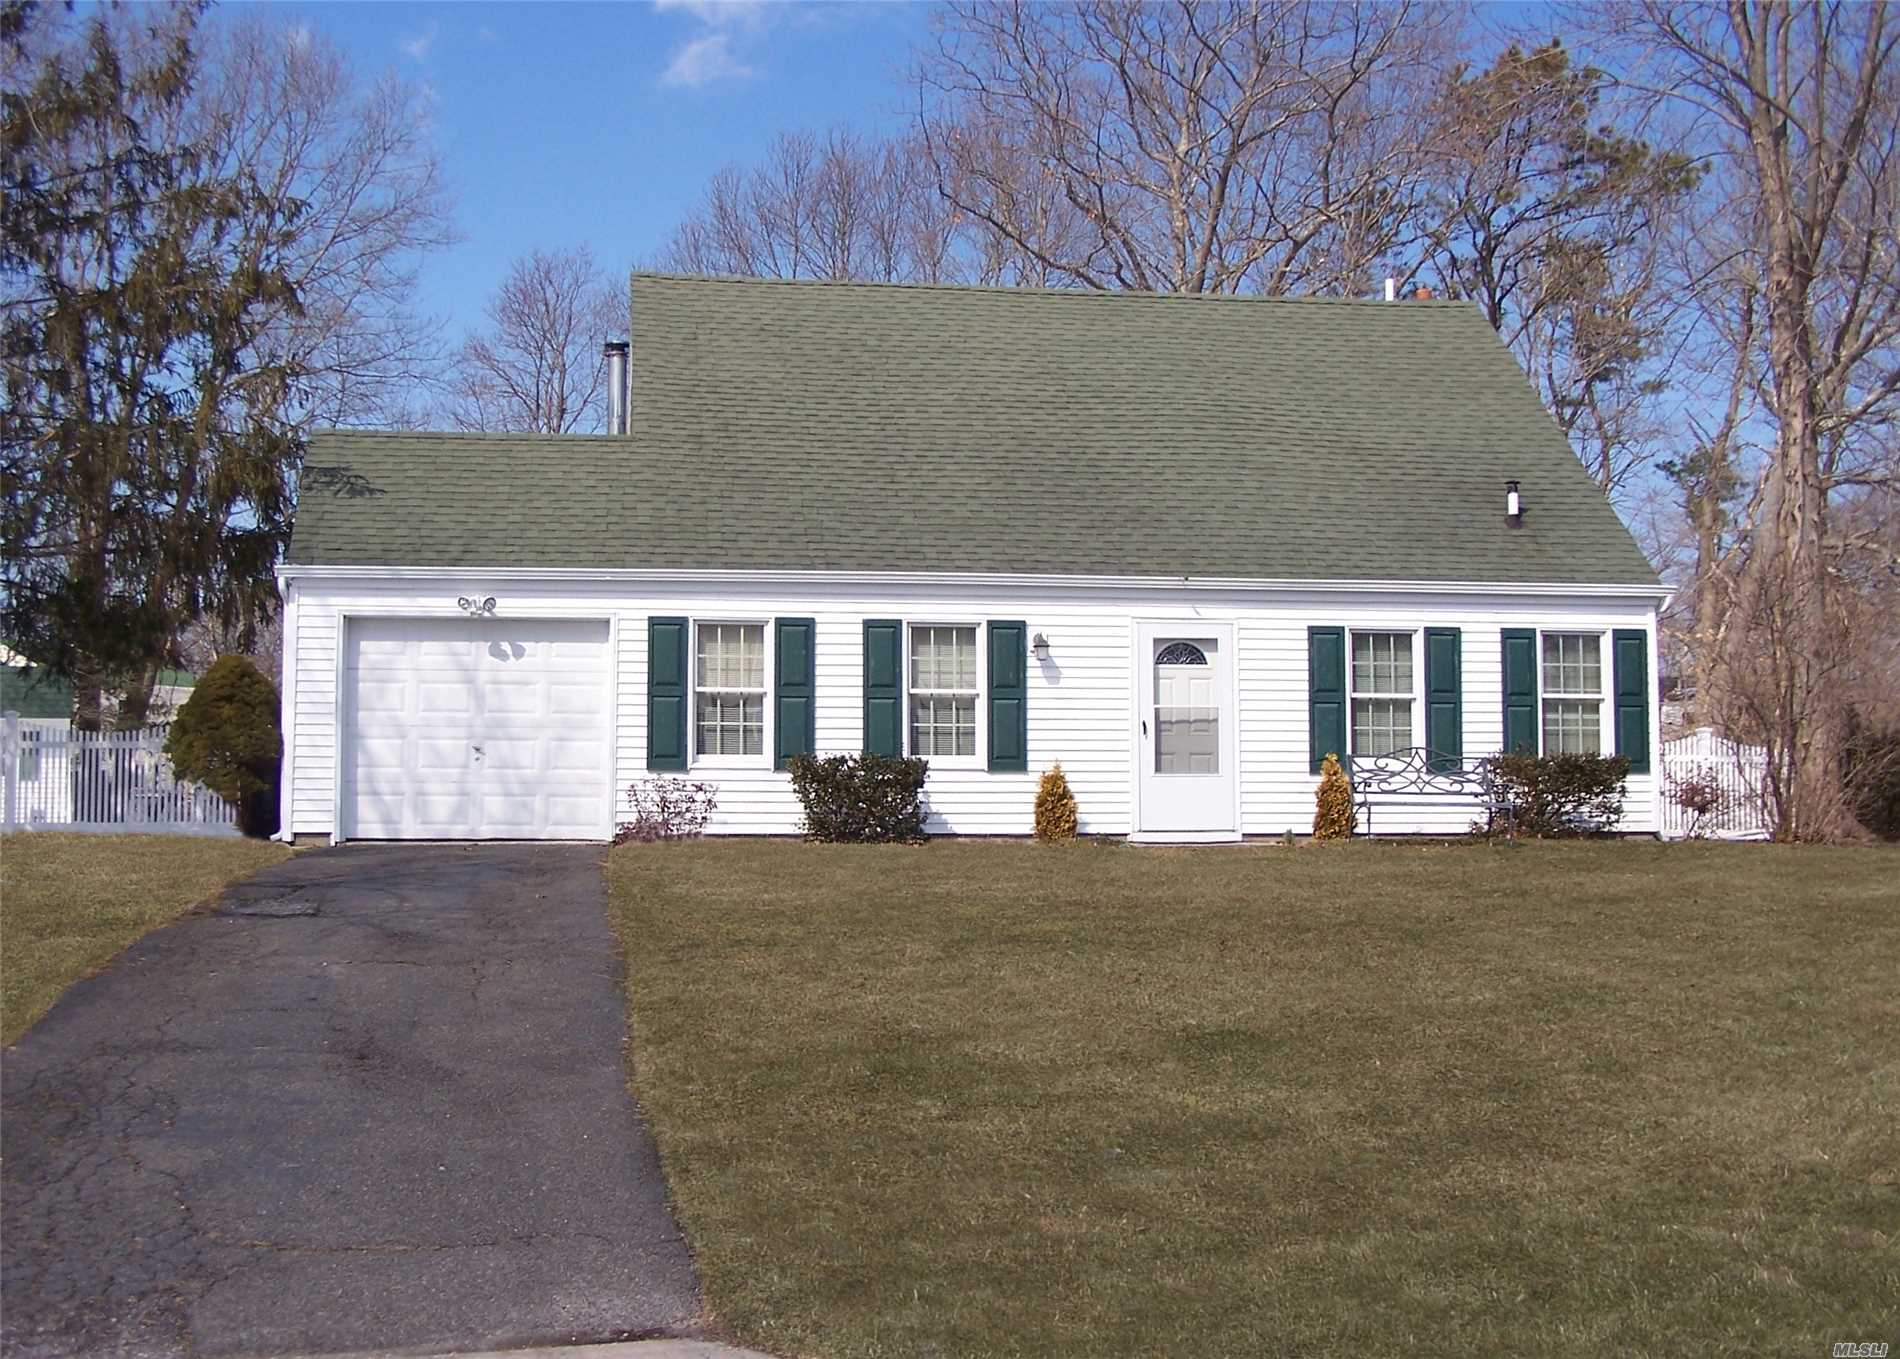 4/5 Bedroom Colonial With 2 Baths- Move-in Condition! Anderson Windows- Pergo & Ceramic Flooring- Recessed Lights- 20 X 40 IG Pool- .50 Acres- Roof Approx 8 Years- 1 Car Garage- Fully Fenced.